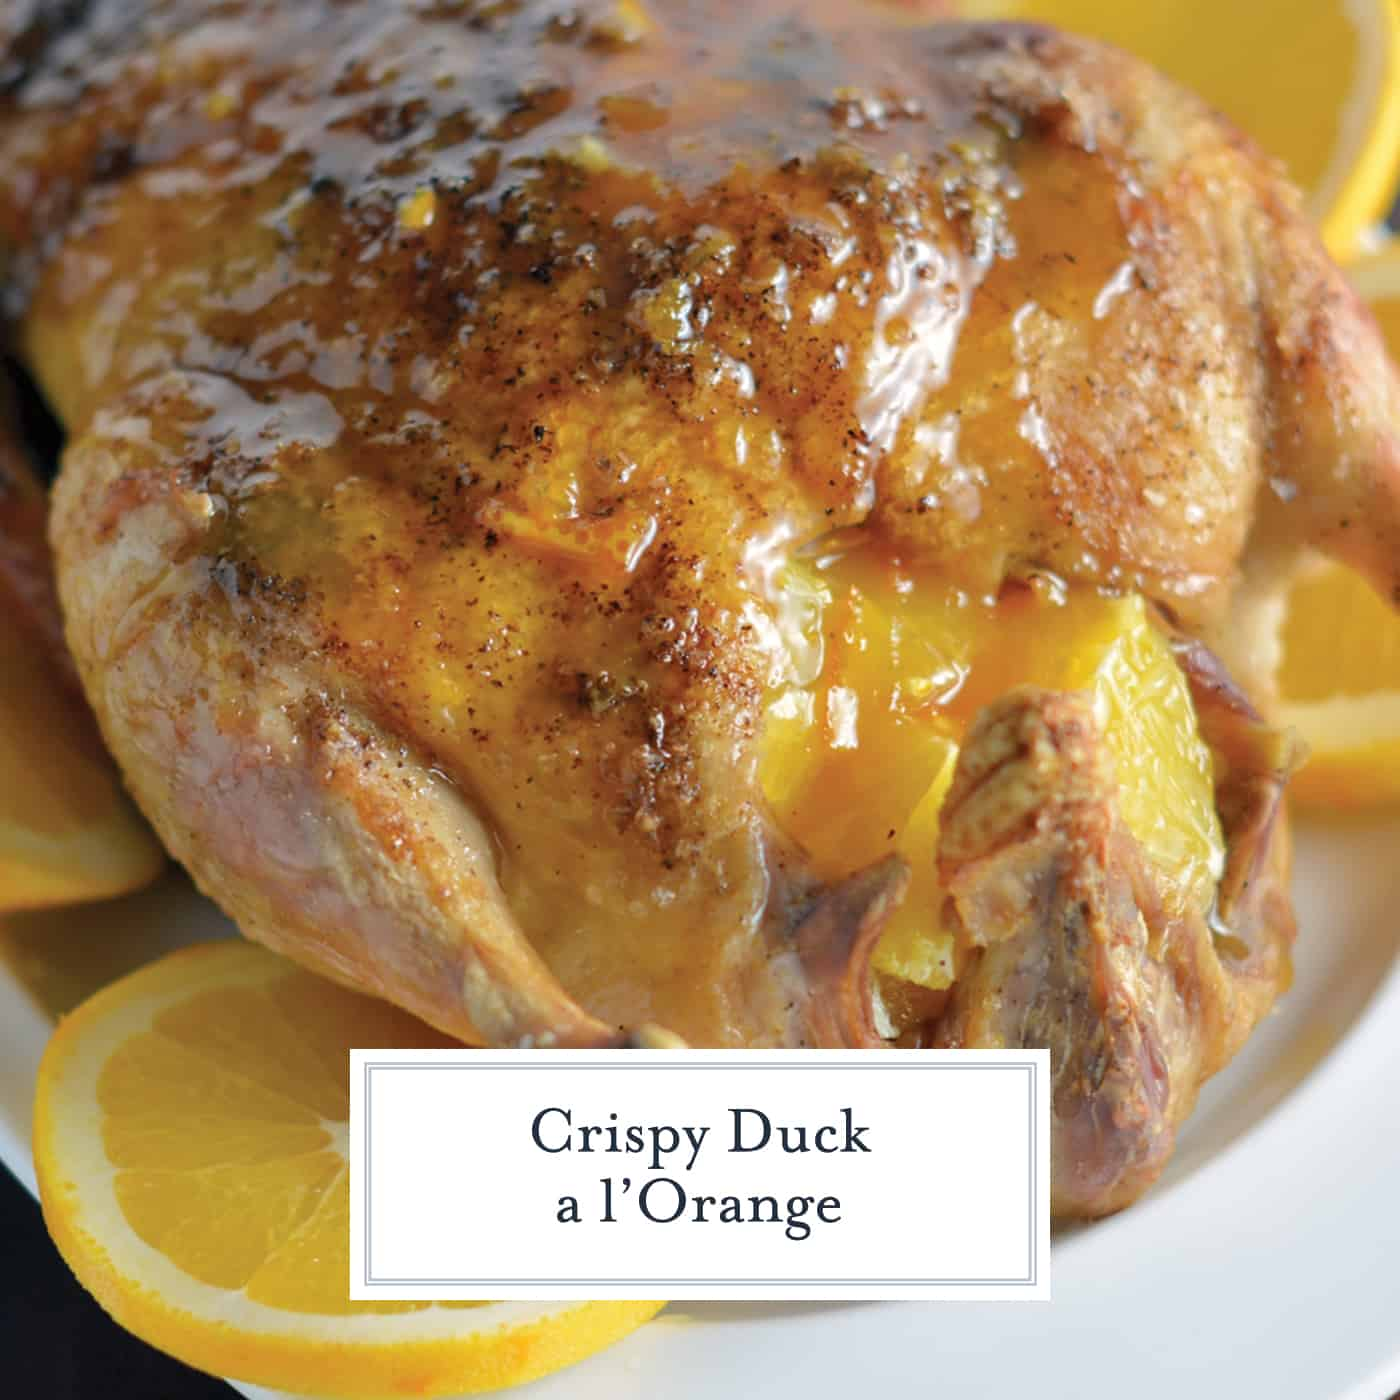 Classic crispy duck a l'orange makes for a perfect holiday or special event dinner. Super juicy and flavorful meat with a crispy, seasoned skin. #duckrecipes #duckalorange www.savoryexperiments.com